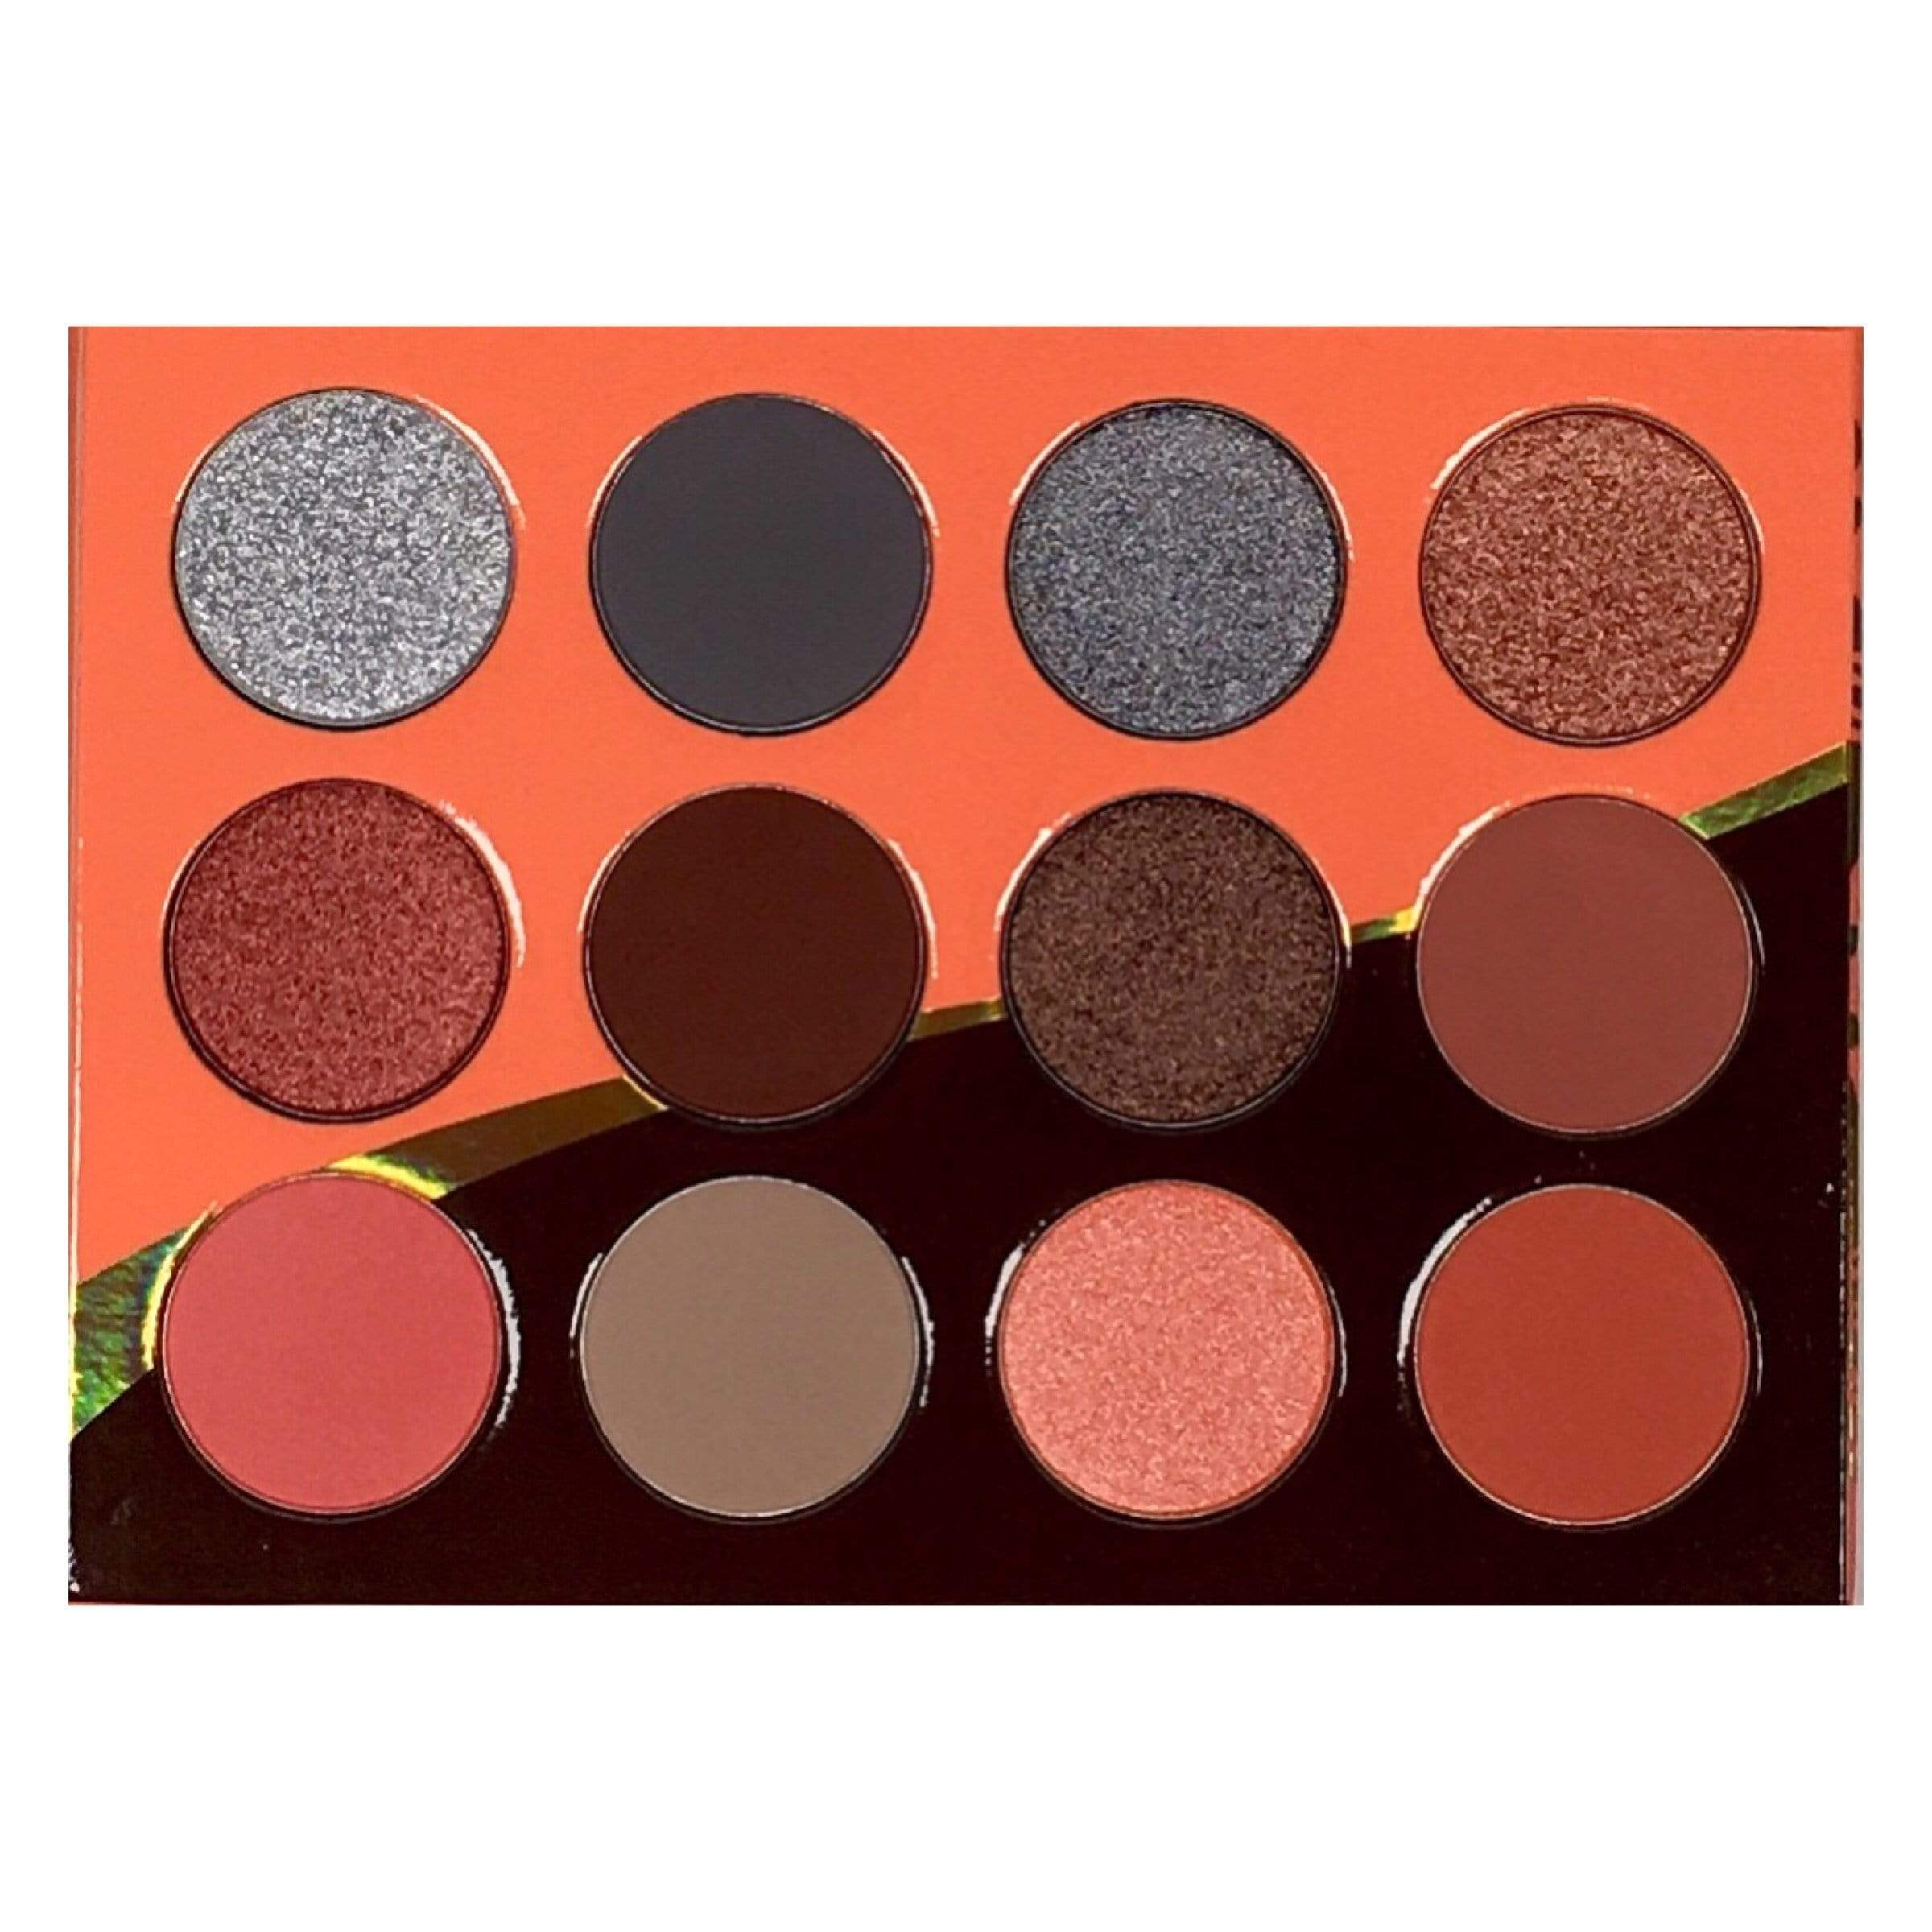 Juvias Place Eyeshadow JUVIA'S PLACE Nubian 3 Coral Eye Shadow Palette